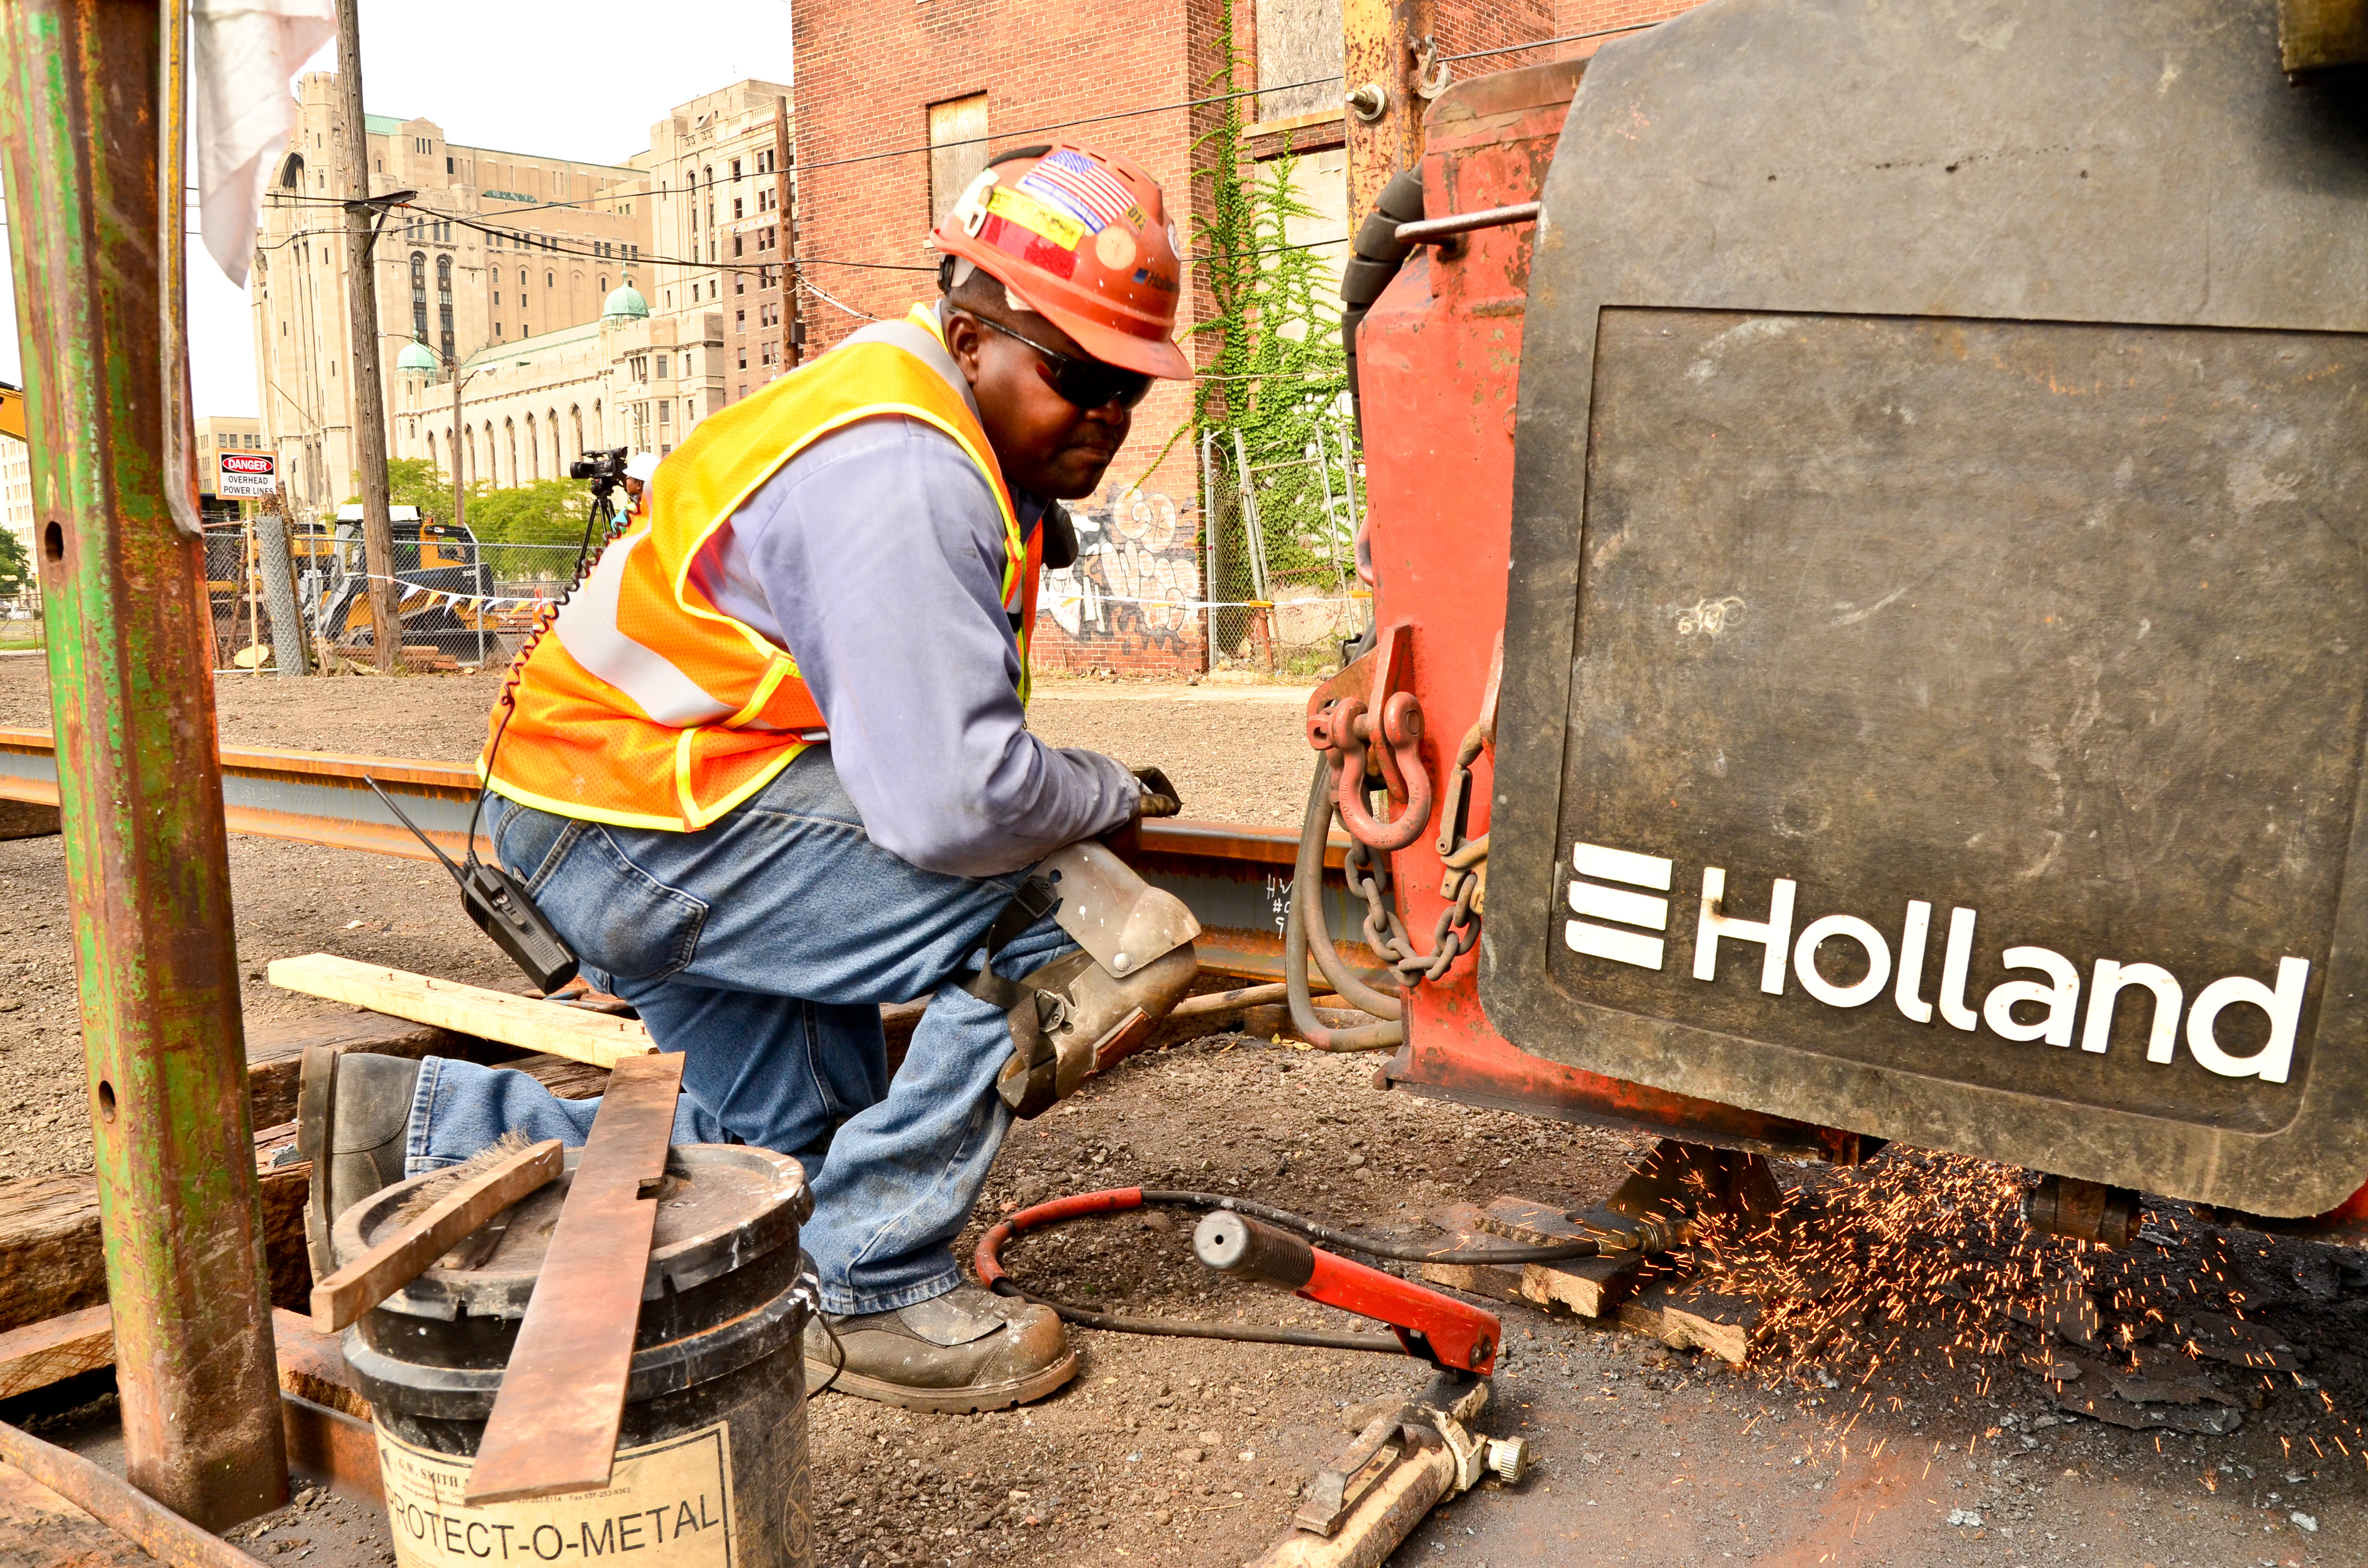 M-1 RAIL BEGINS WELDING TRACK FOR STREETCAR LINE | The